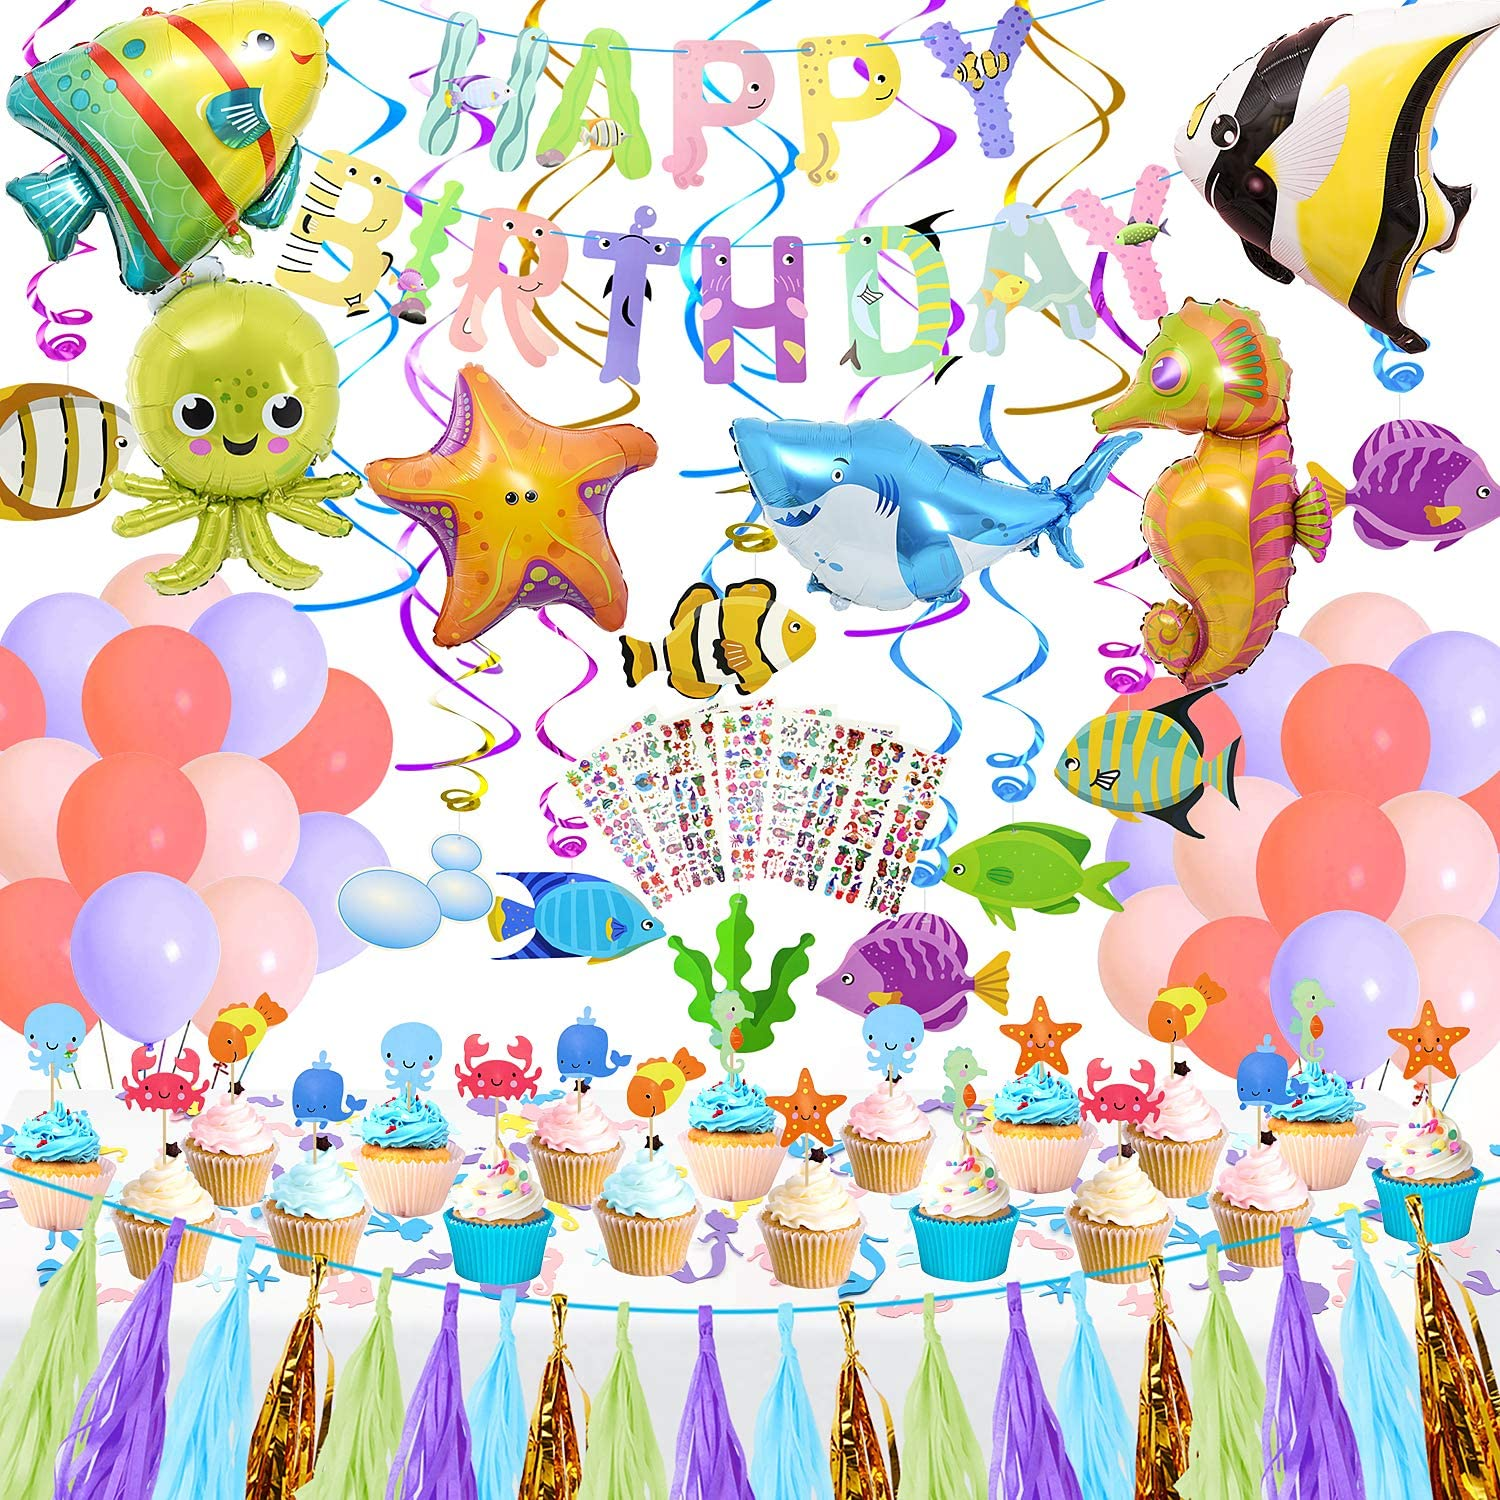 Balloons Tropical Fish Party Decorations for Kids Ocean Theme Birthday Decor Hanging Swirl Birthday Banner Cake Toppers Tattoos Under The Sea Party Supplies for Boys Girls Baby Shower